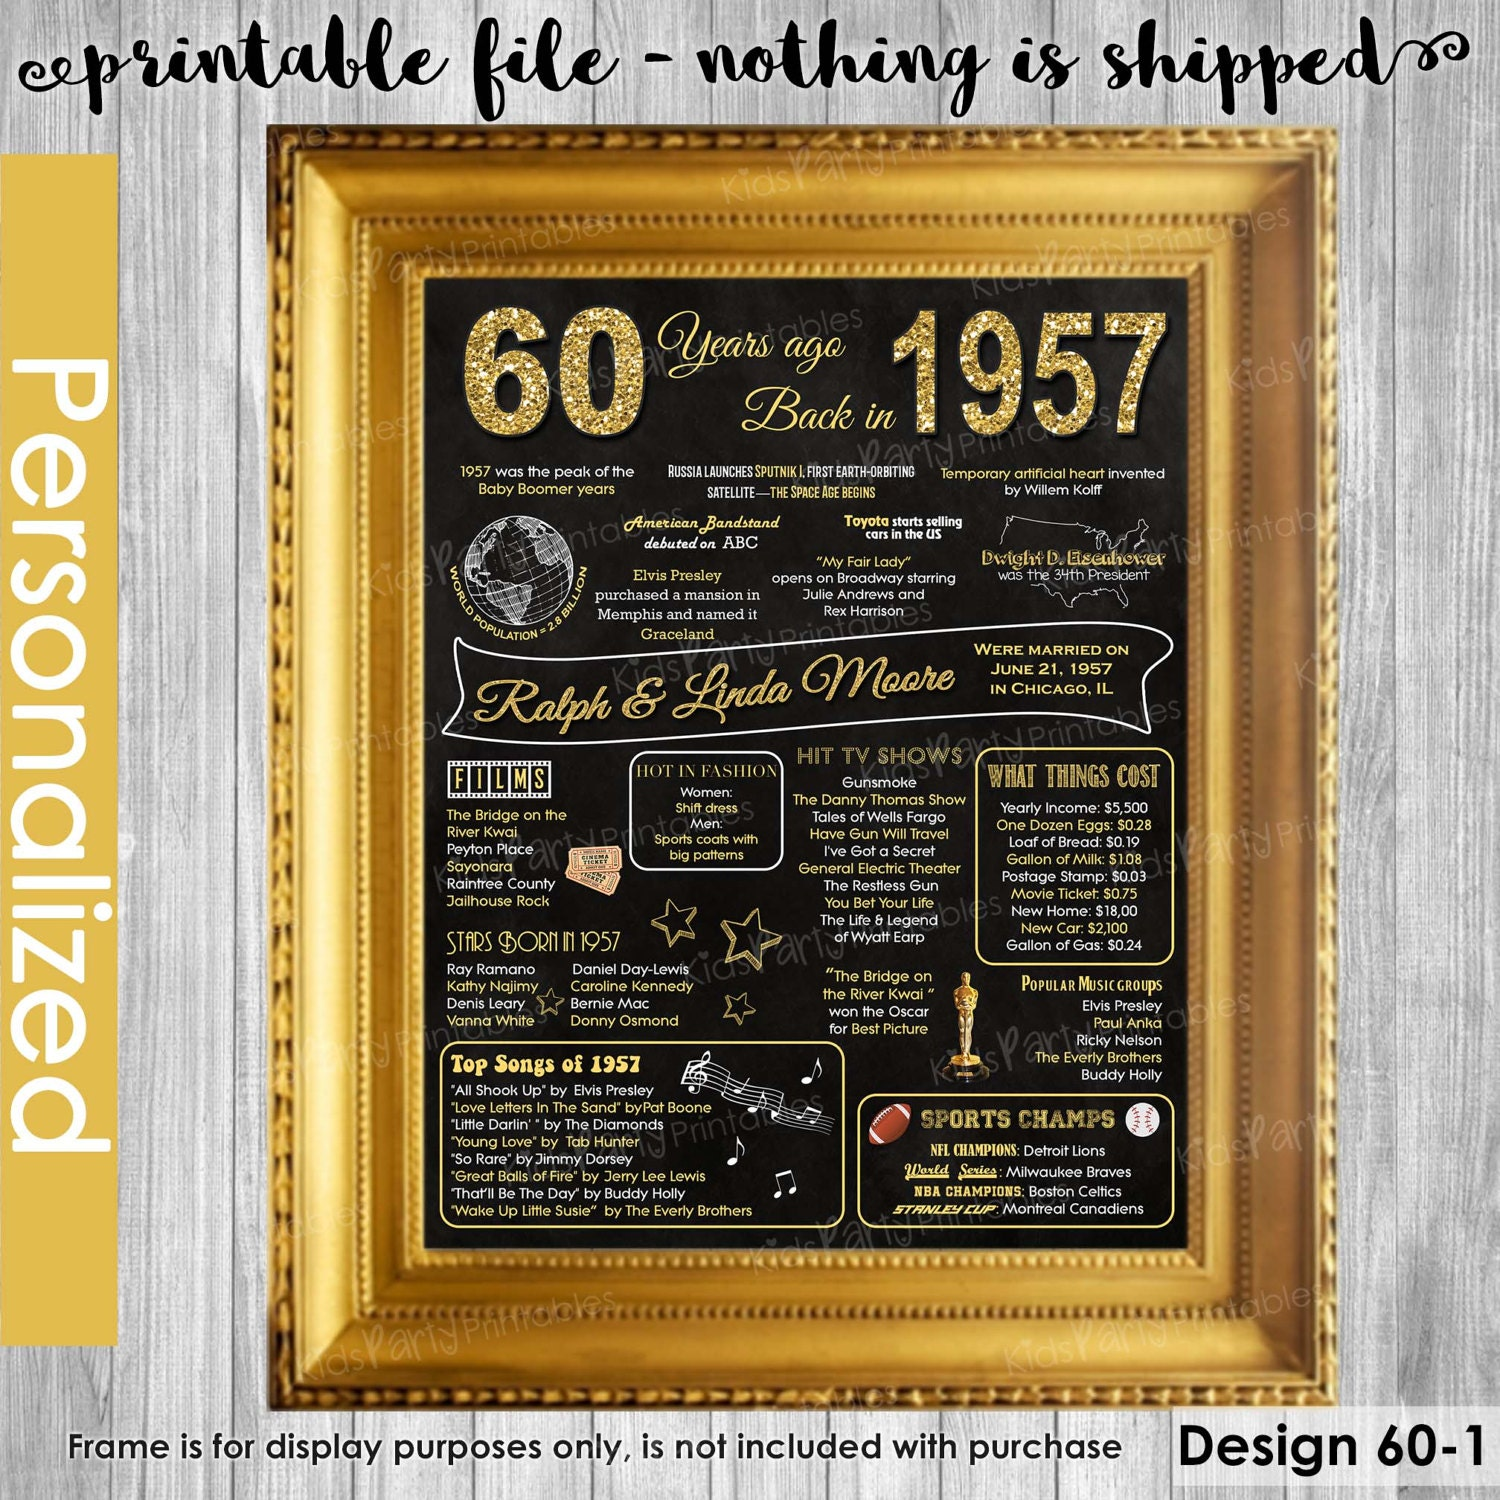 60th Wedding Anniversary Traditional Gifts: 60th Wedding Anniversary Gifts 60th Anniversary Gift For